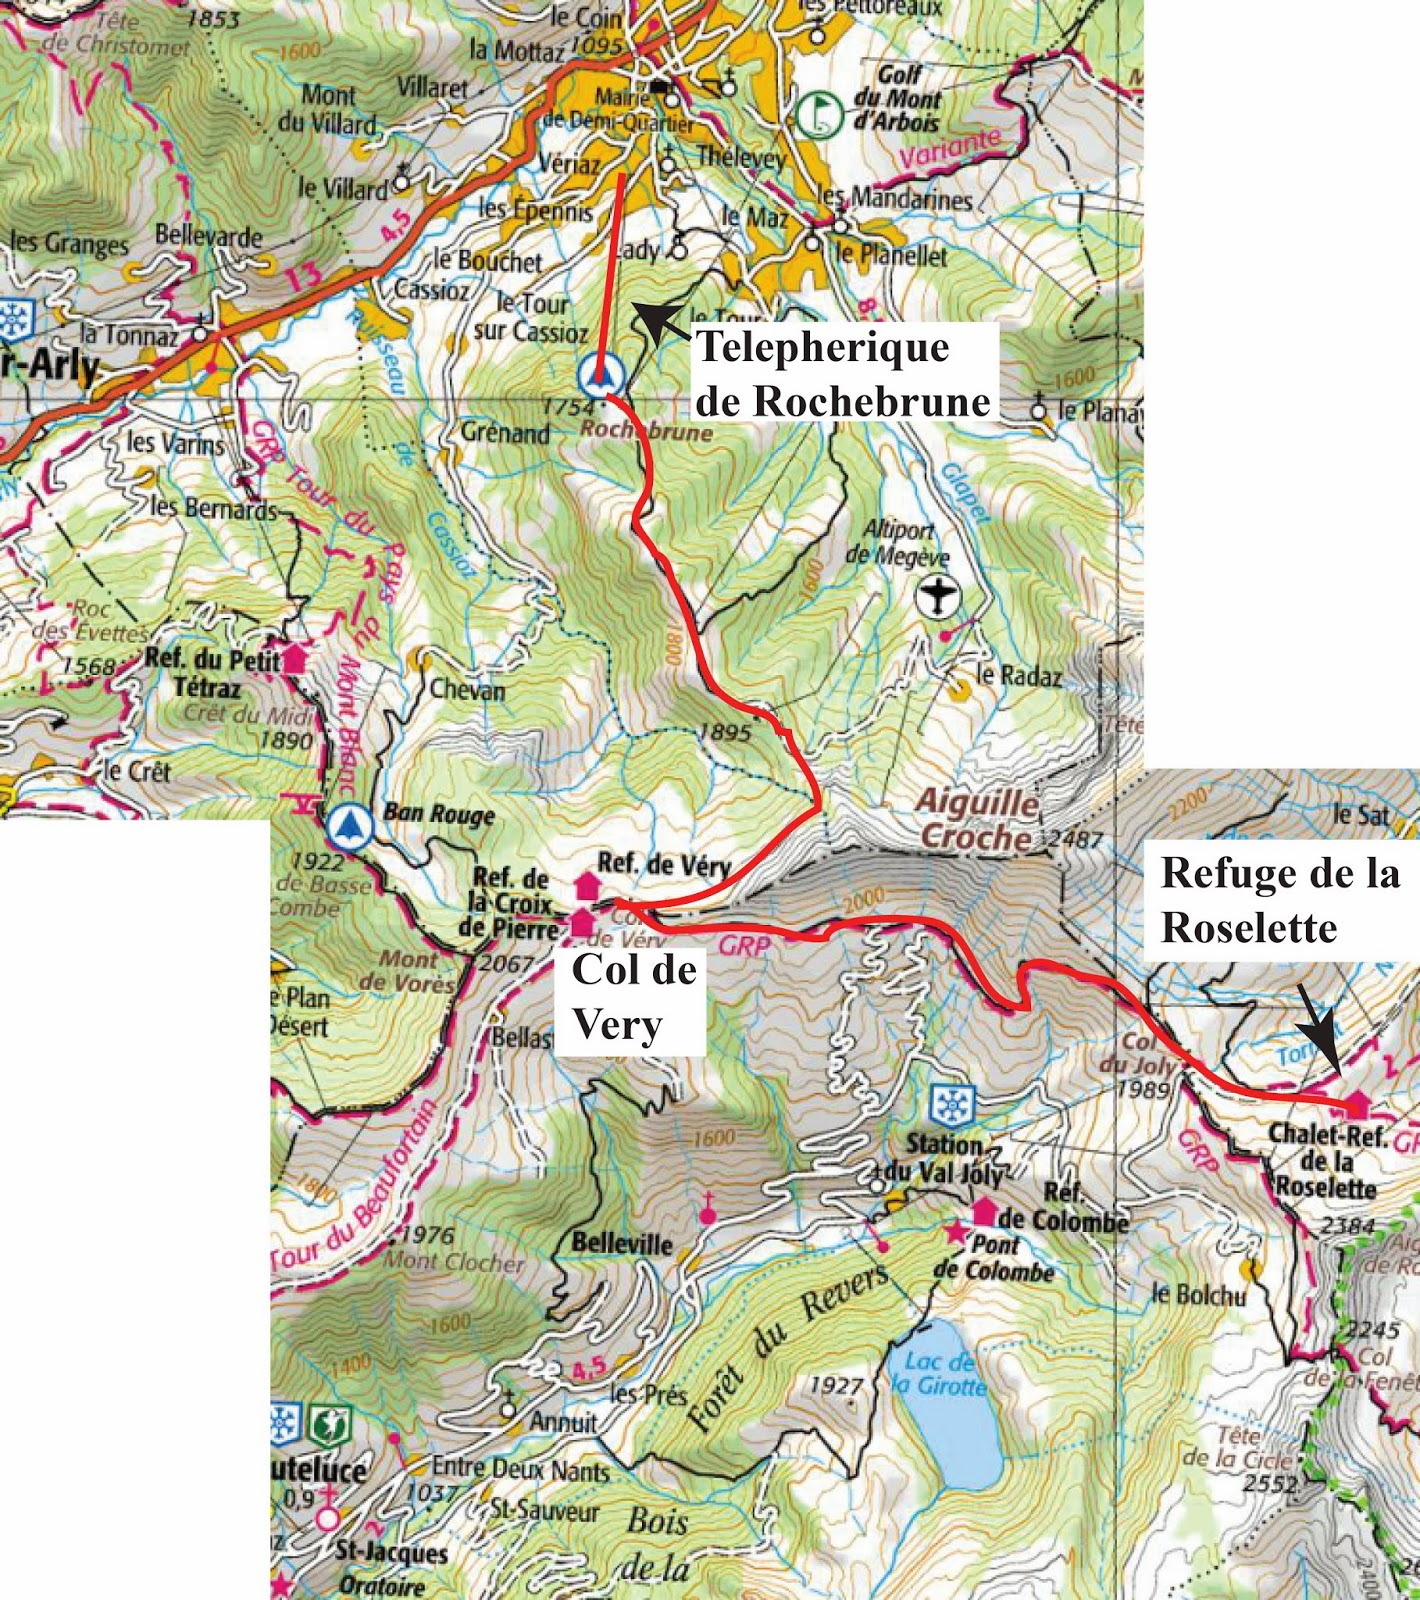 day 1 megeve to refuge de la roselette the route is indicated in red click on the map to enlarge